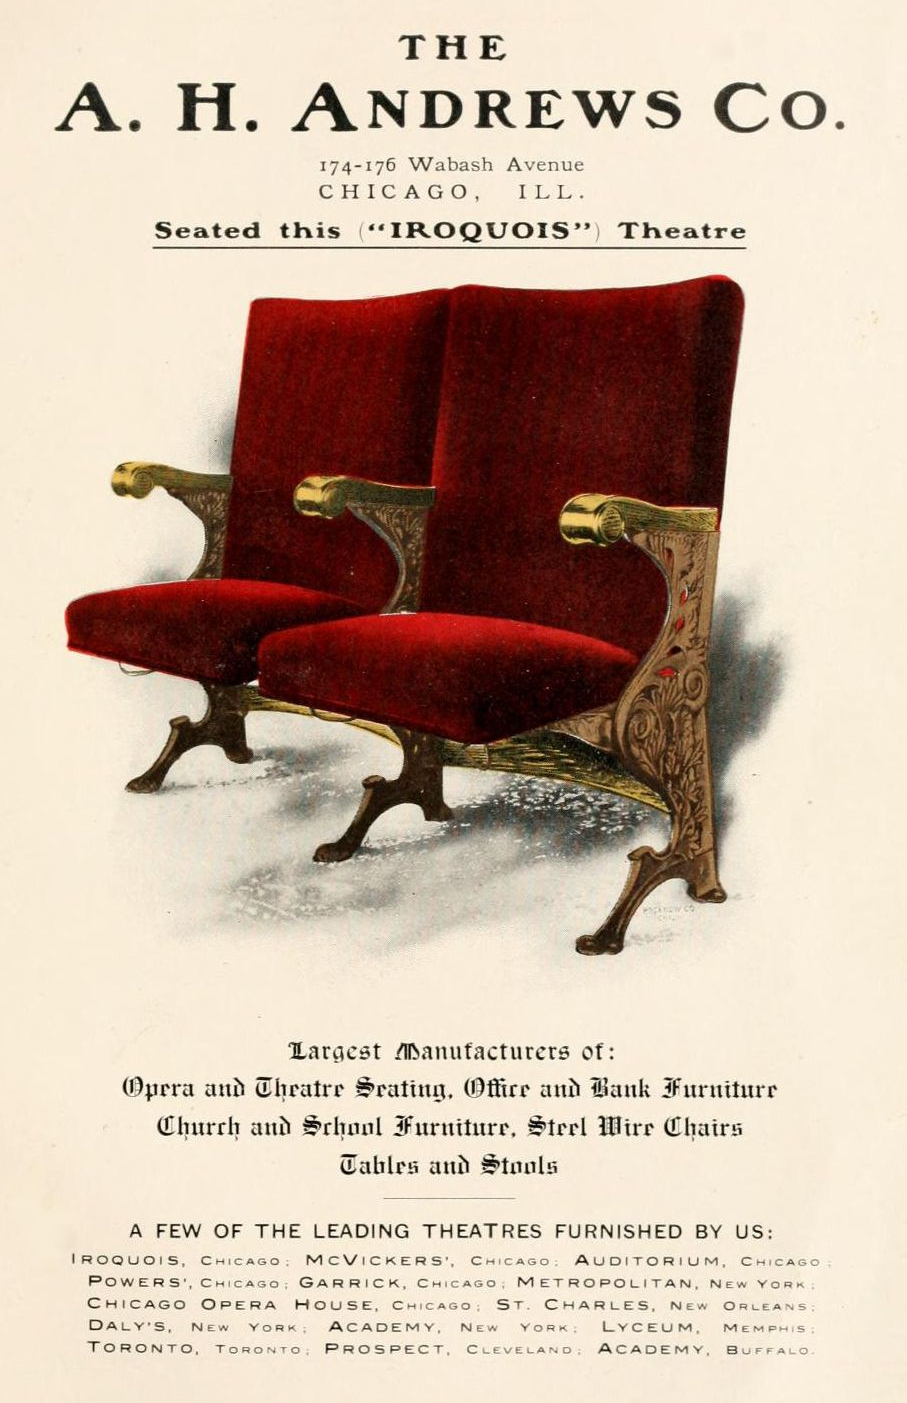 A.H. Andrews was a major supplier of comercial furniture